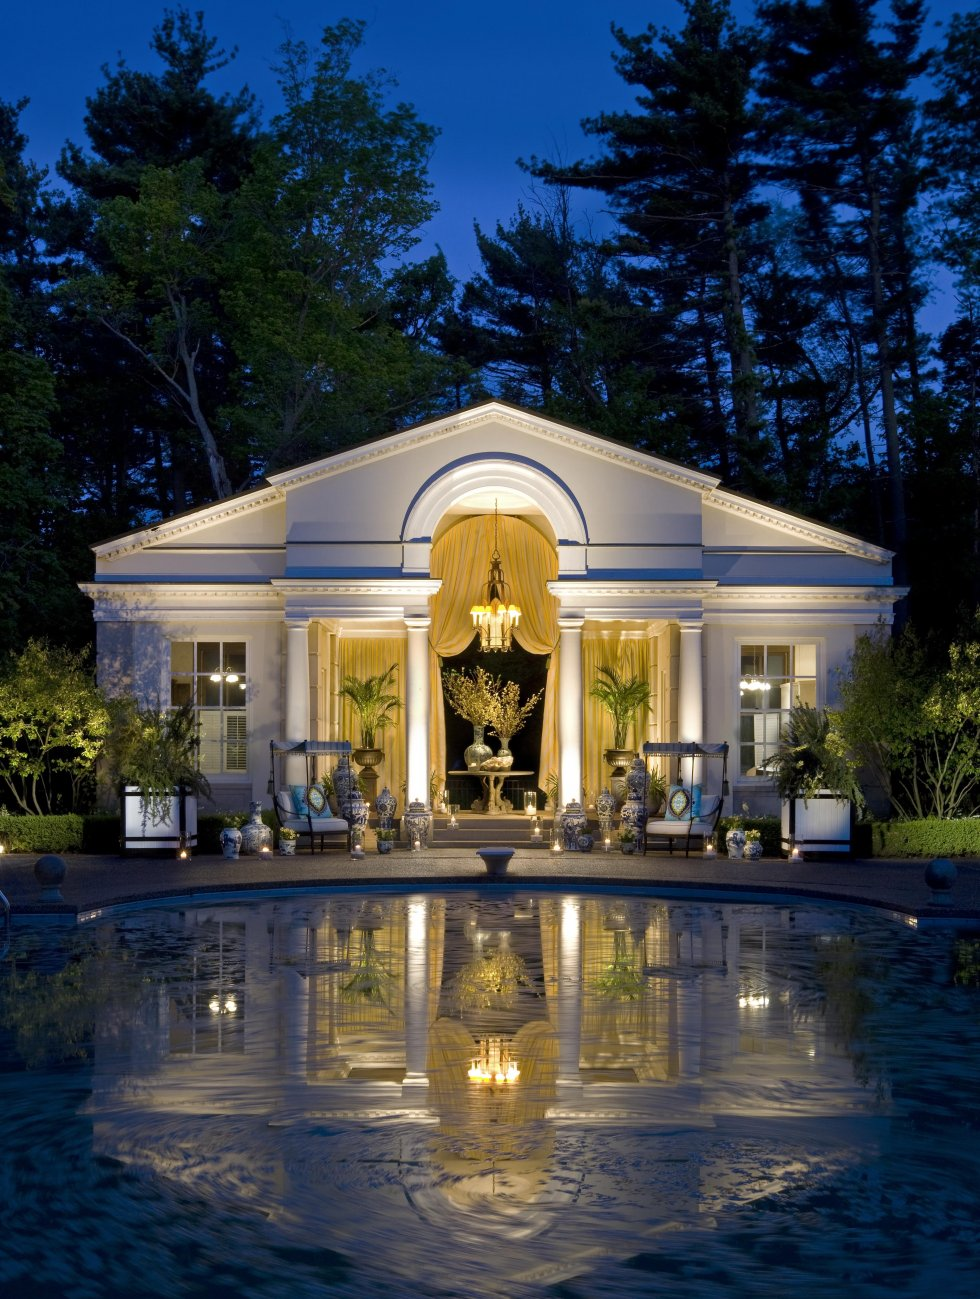 Modern swimming pool designs: Stunning Striking Elegant Bright Alcove Expensive Poolside Area Designs